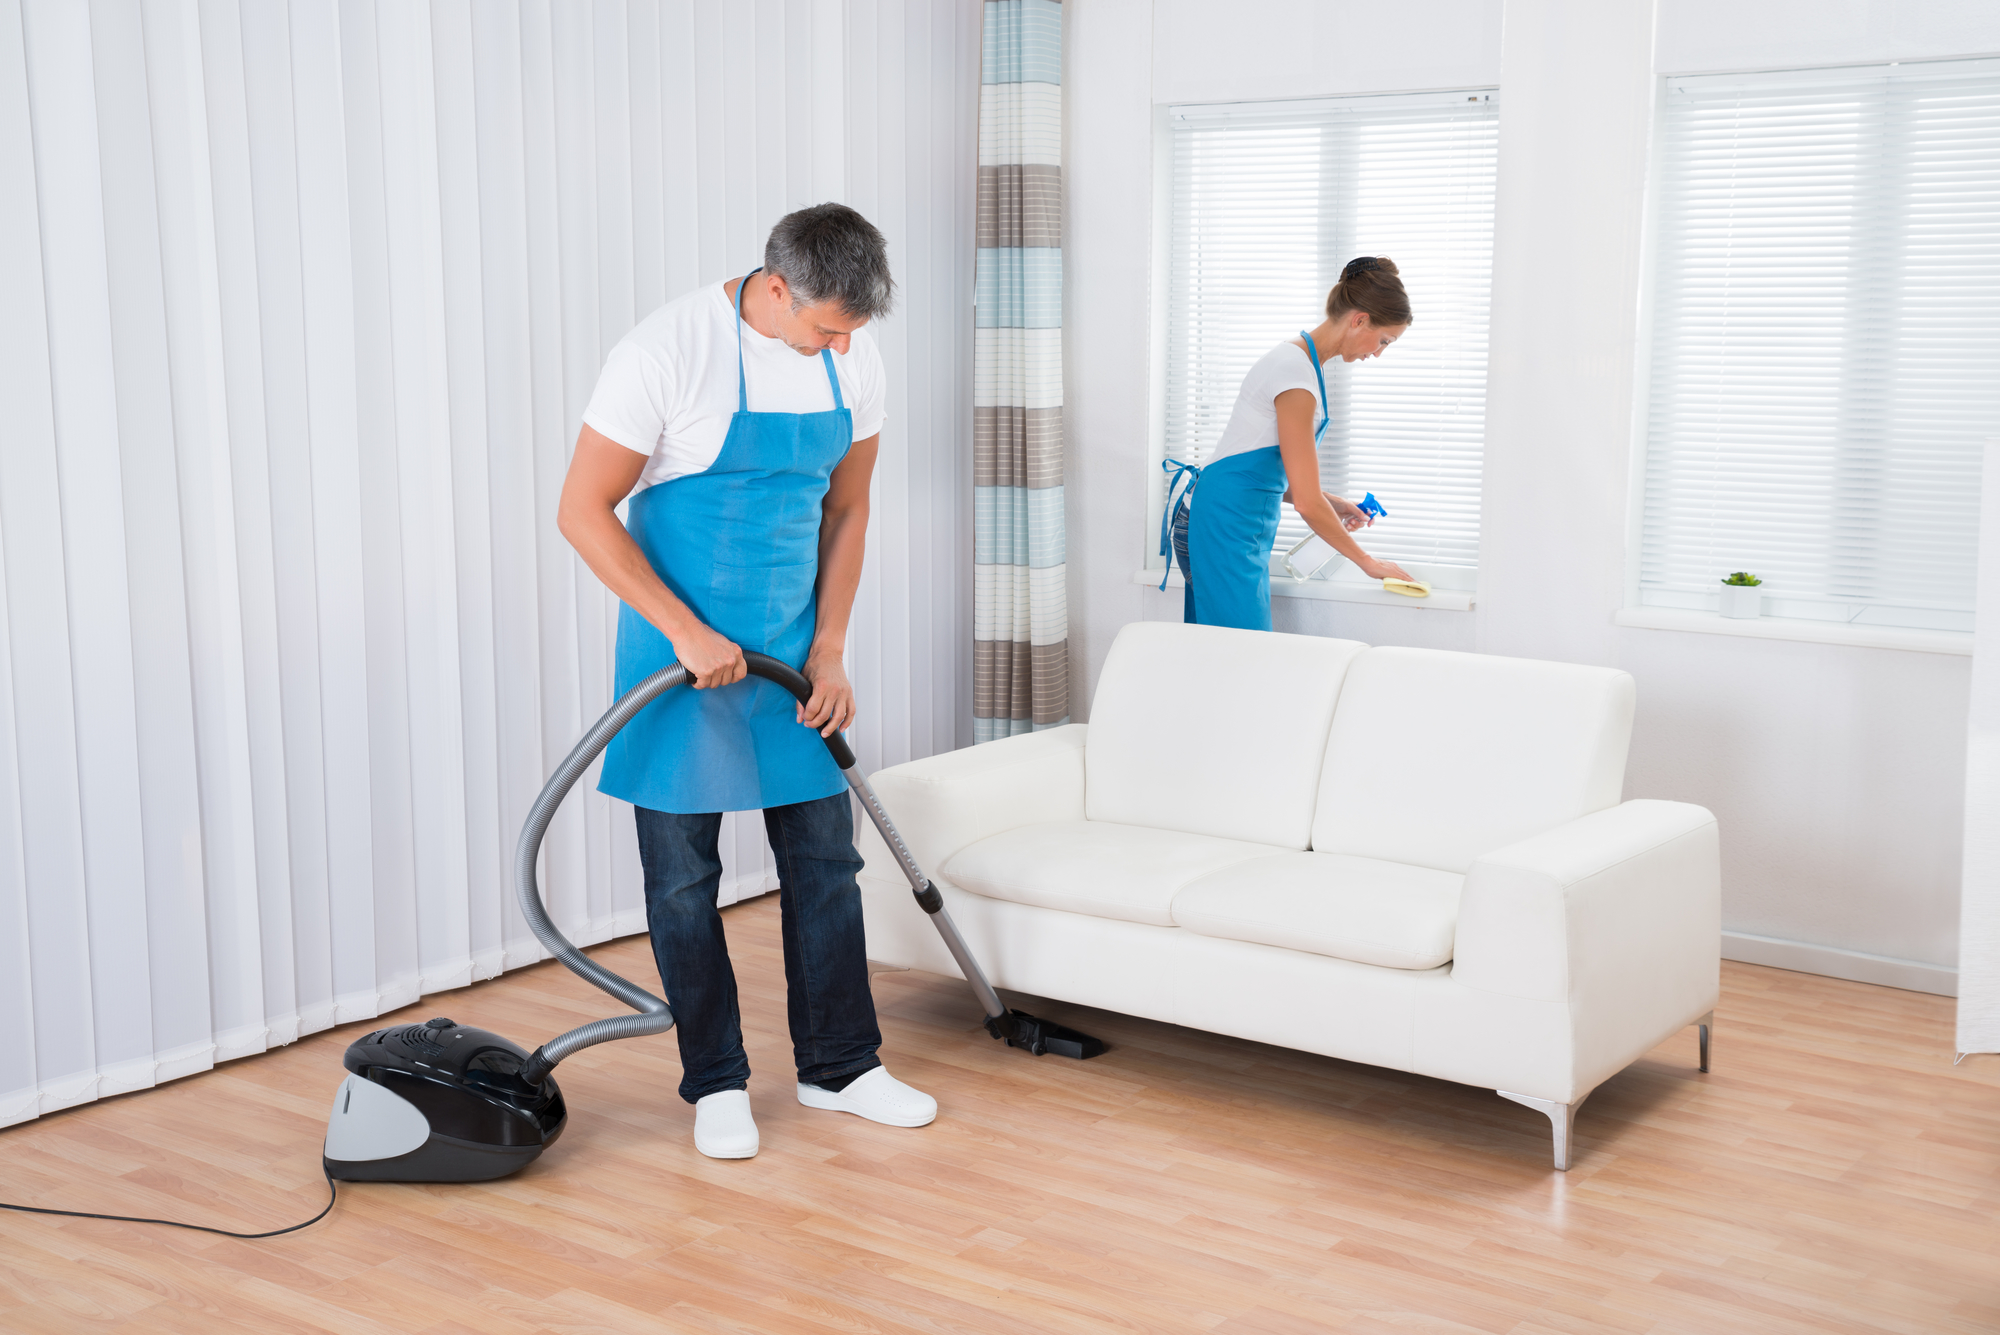 5 Reasons to Hire a Cleaning Service When Moving - Perfection Cleaning -  Lincoln | NearSay